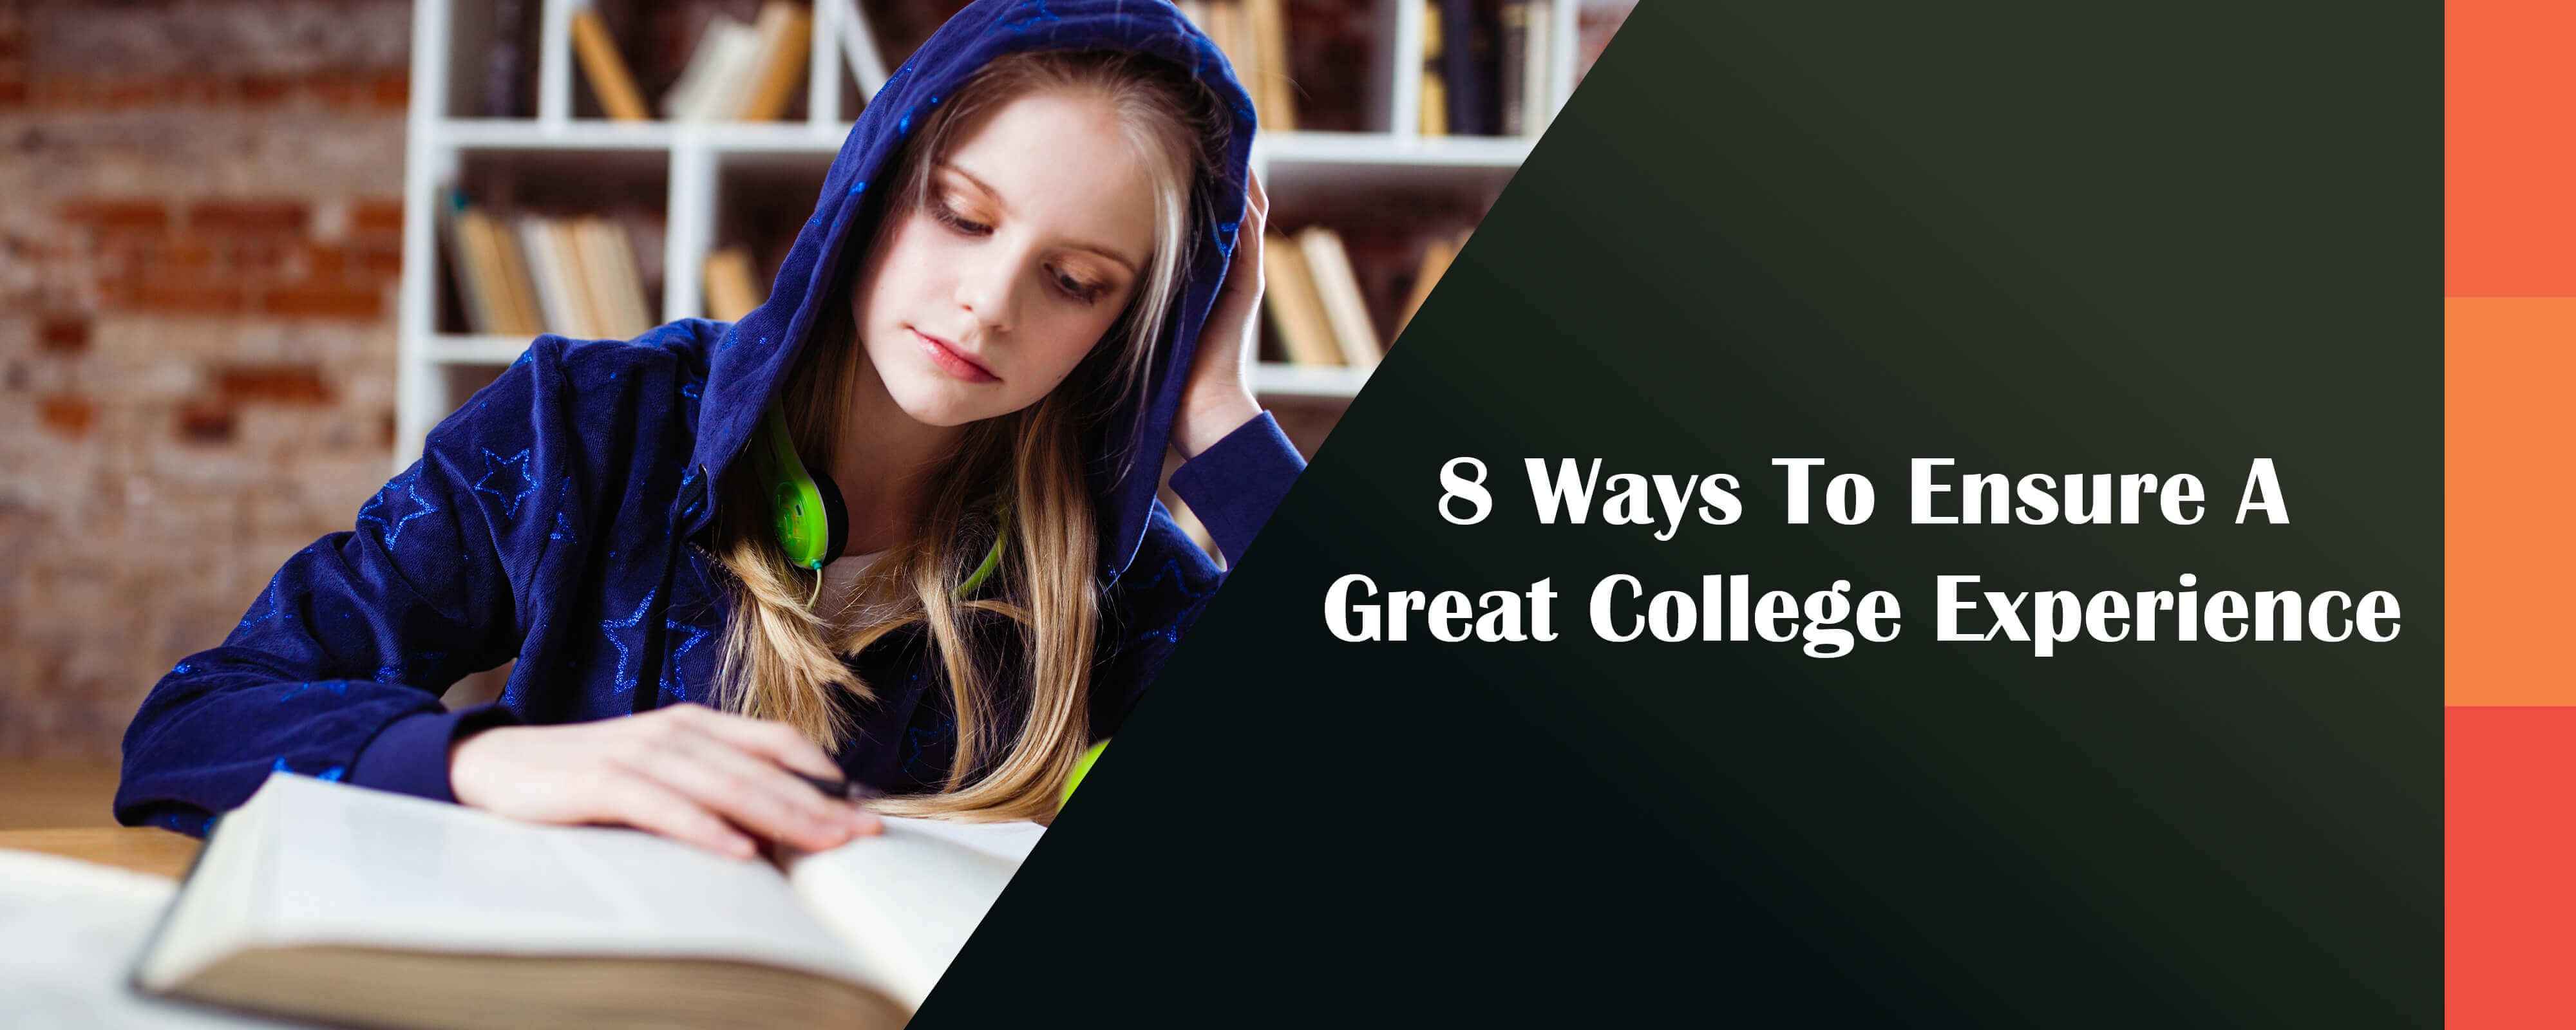 8 Ways To Ensure A Great College Experience, UK Dissertation Help